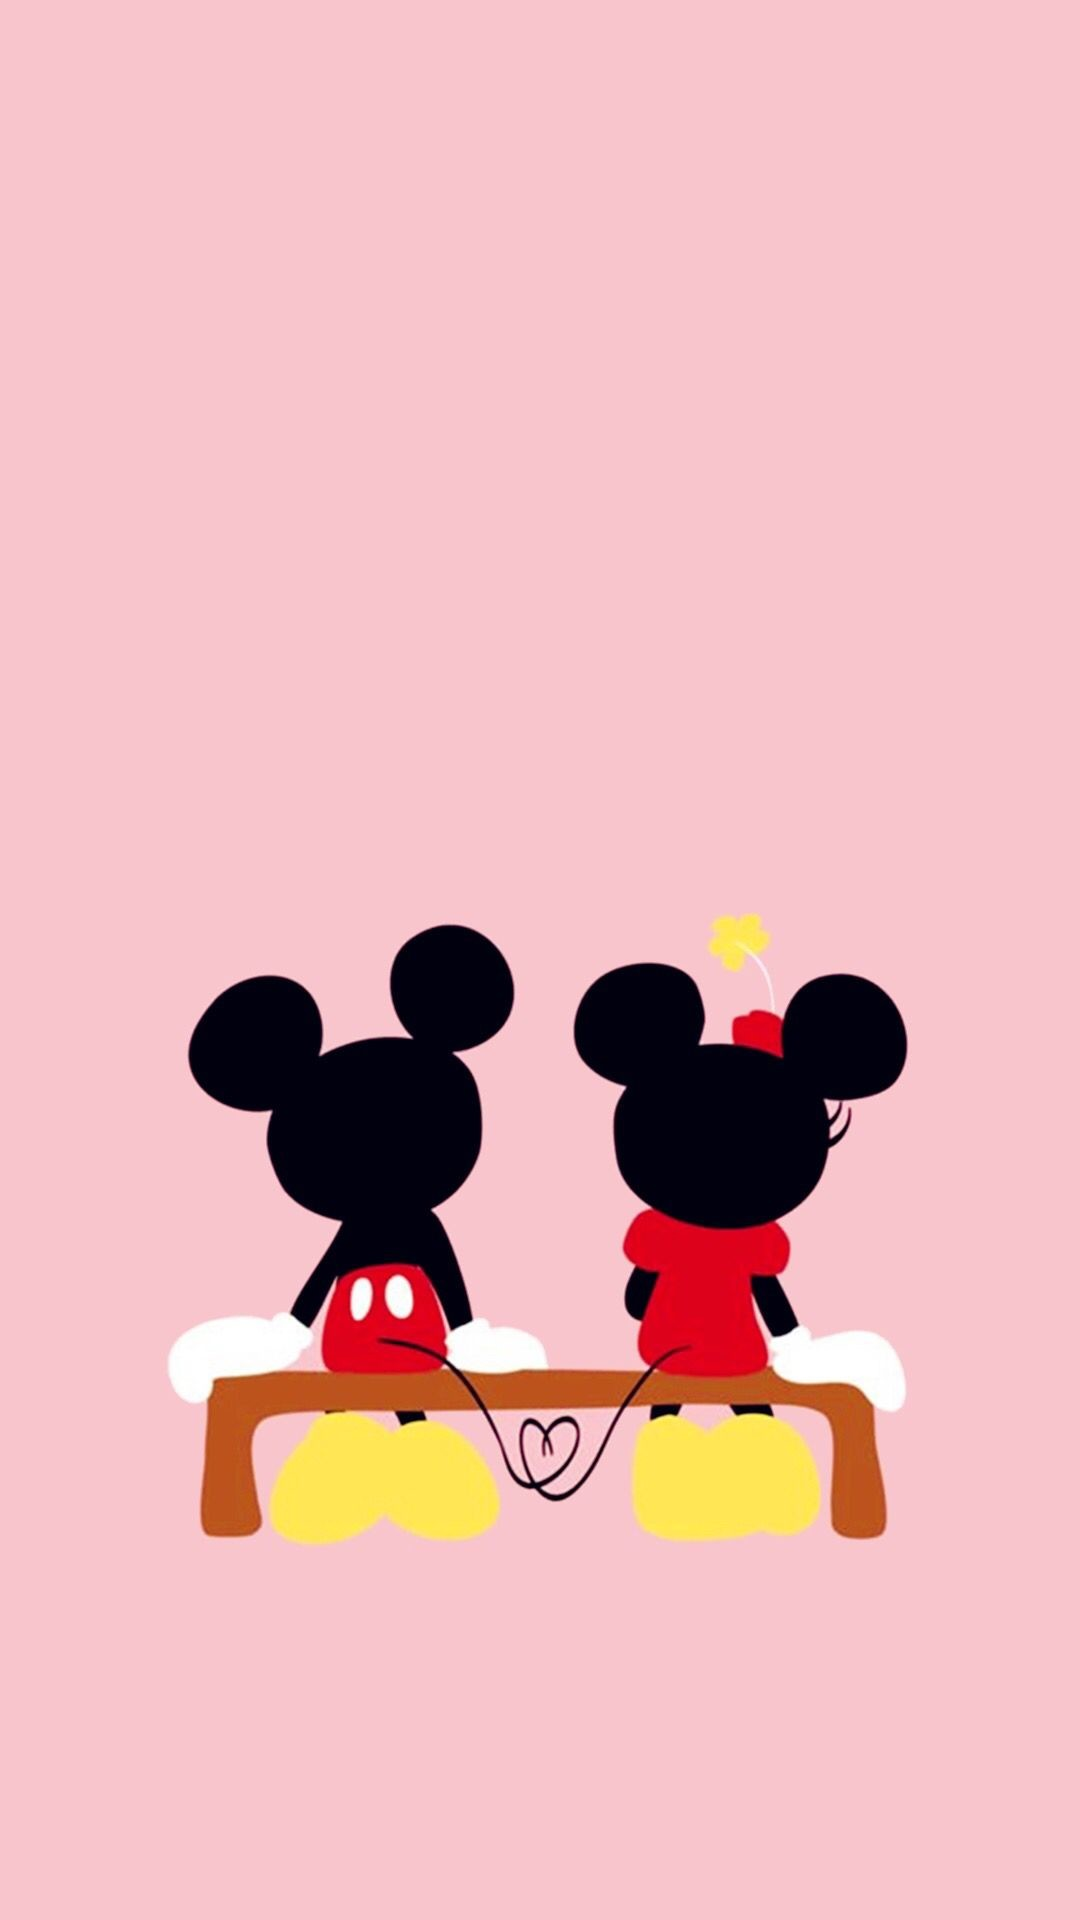 Res: 1080x1920, Best Mickey Wallpaper, beautiful Mickey drawing wallpaper for all phones.<3